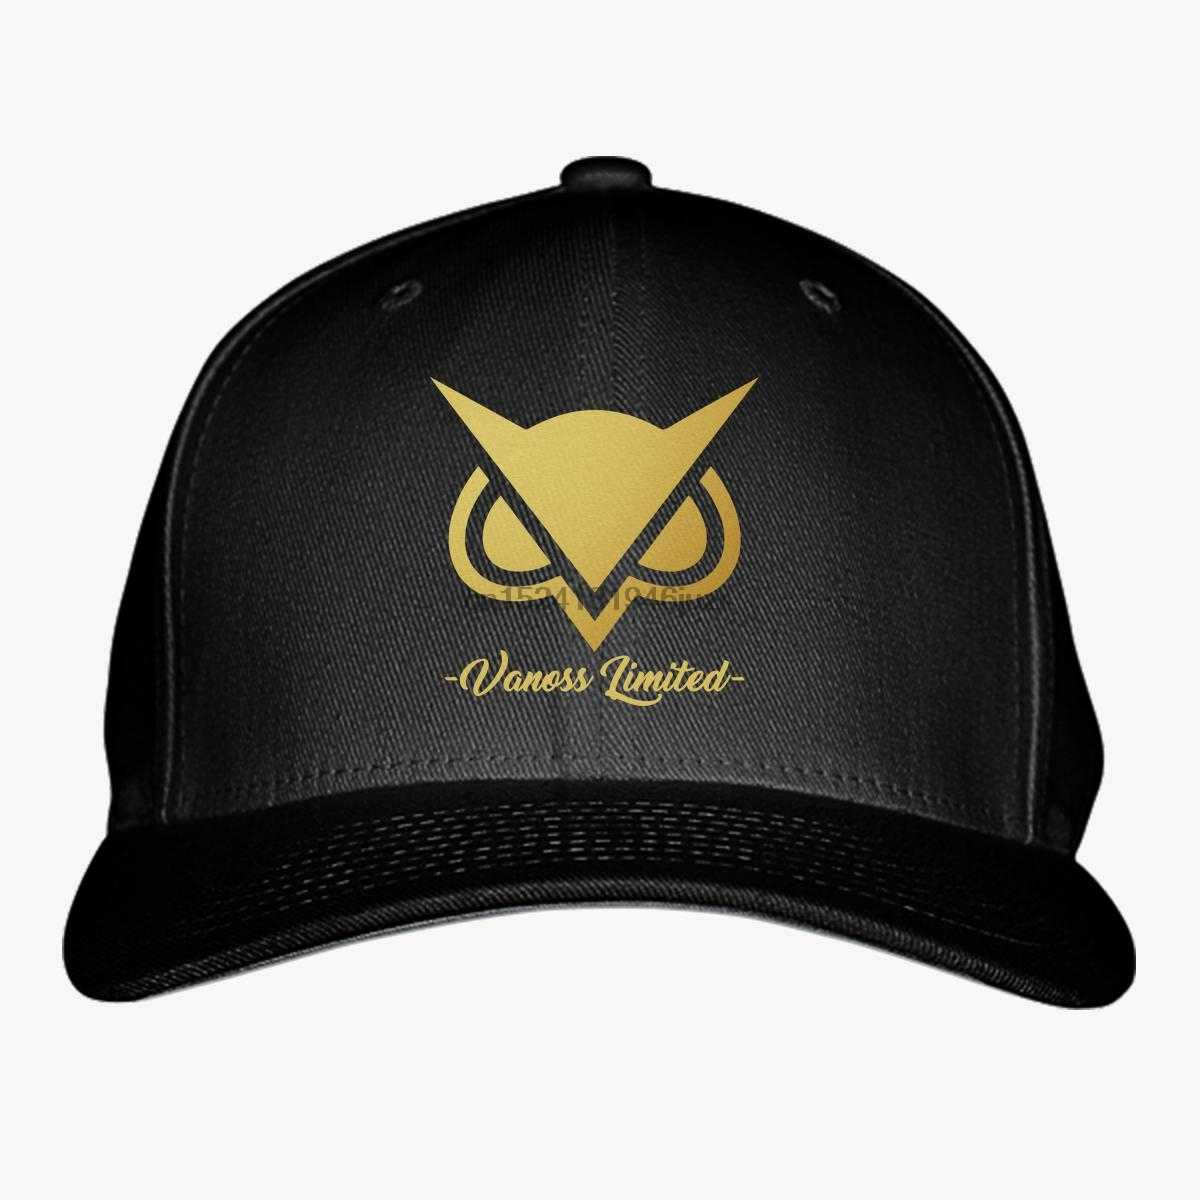 10465904d89ba hip hop Baseball caps Printed snapback Vanoss Gaming Limited Edition Baseball  Cap